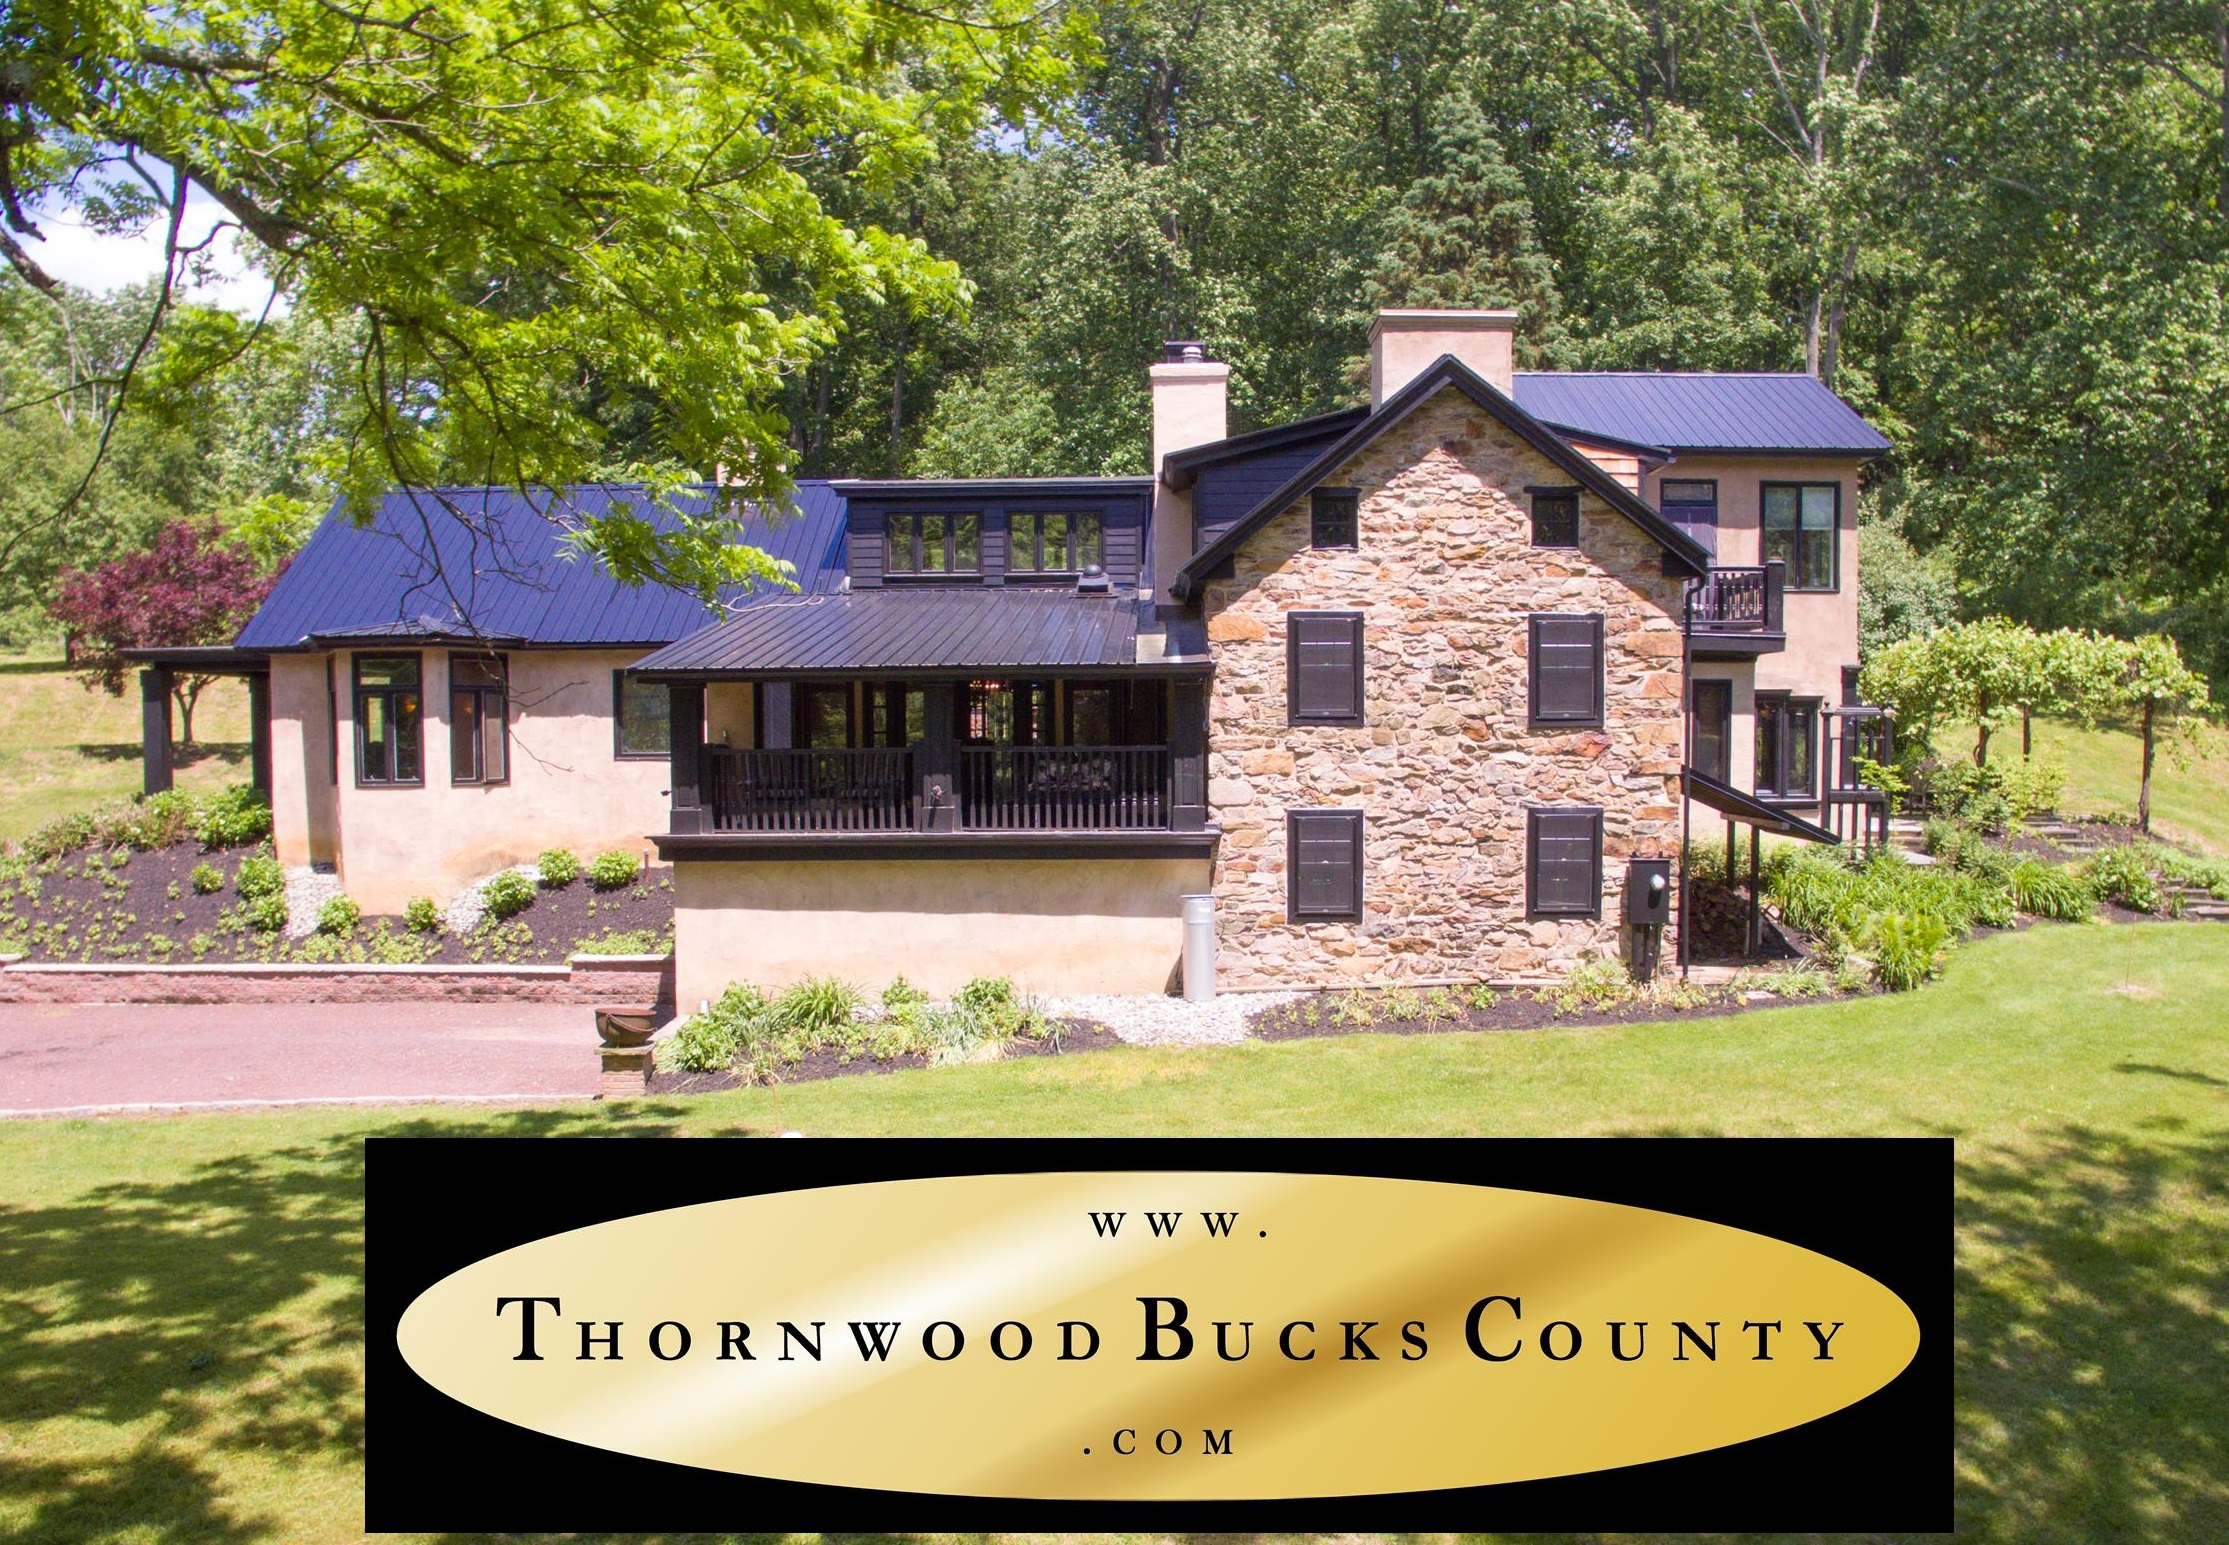 Upper Bucks Homes | #UpperBucksHomes | Thornwood Bucks County | #ThornwoodBucksCounty | Upper Bucks Getaway | #UpperBucksGetaway | Upper Bucks Manor | #UpperBucksManor | Upper Bucks Real Estate | #UpperBucksRealEstate